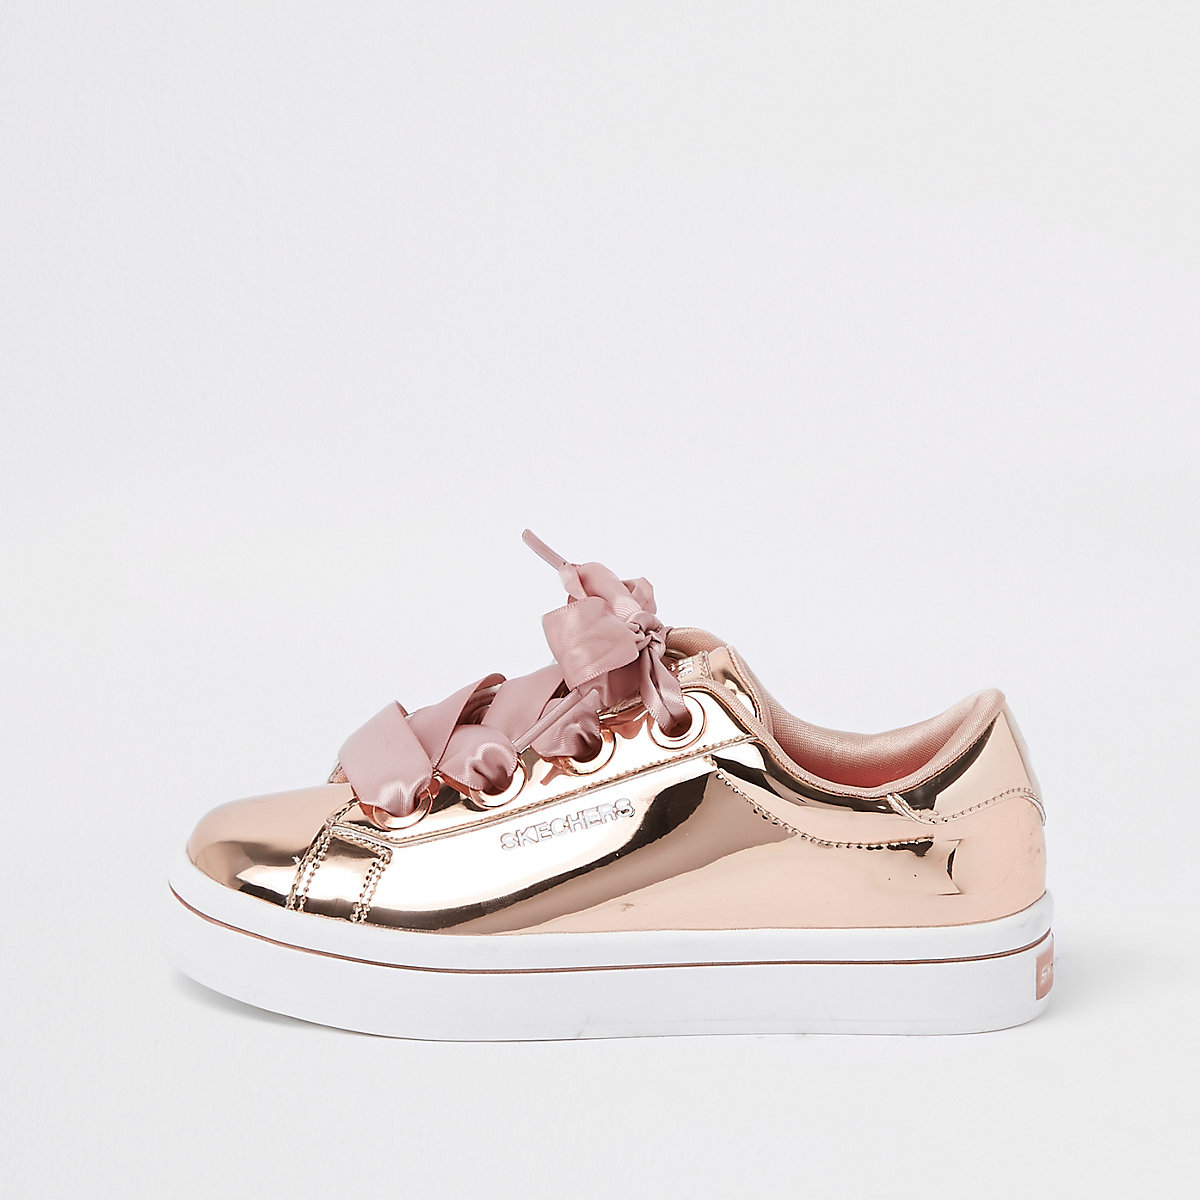 Girls Skechers rose gold low top sneakers